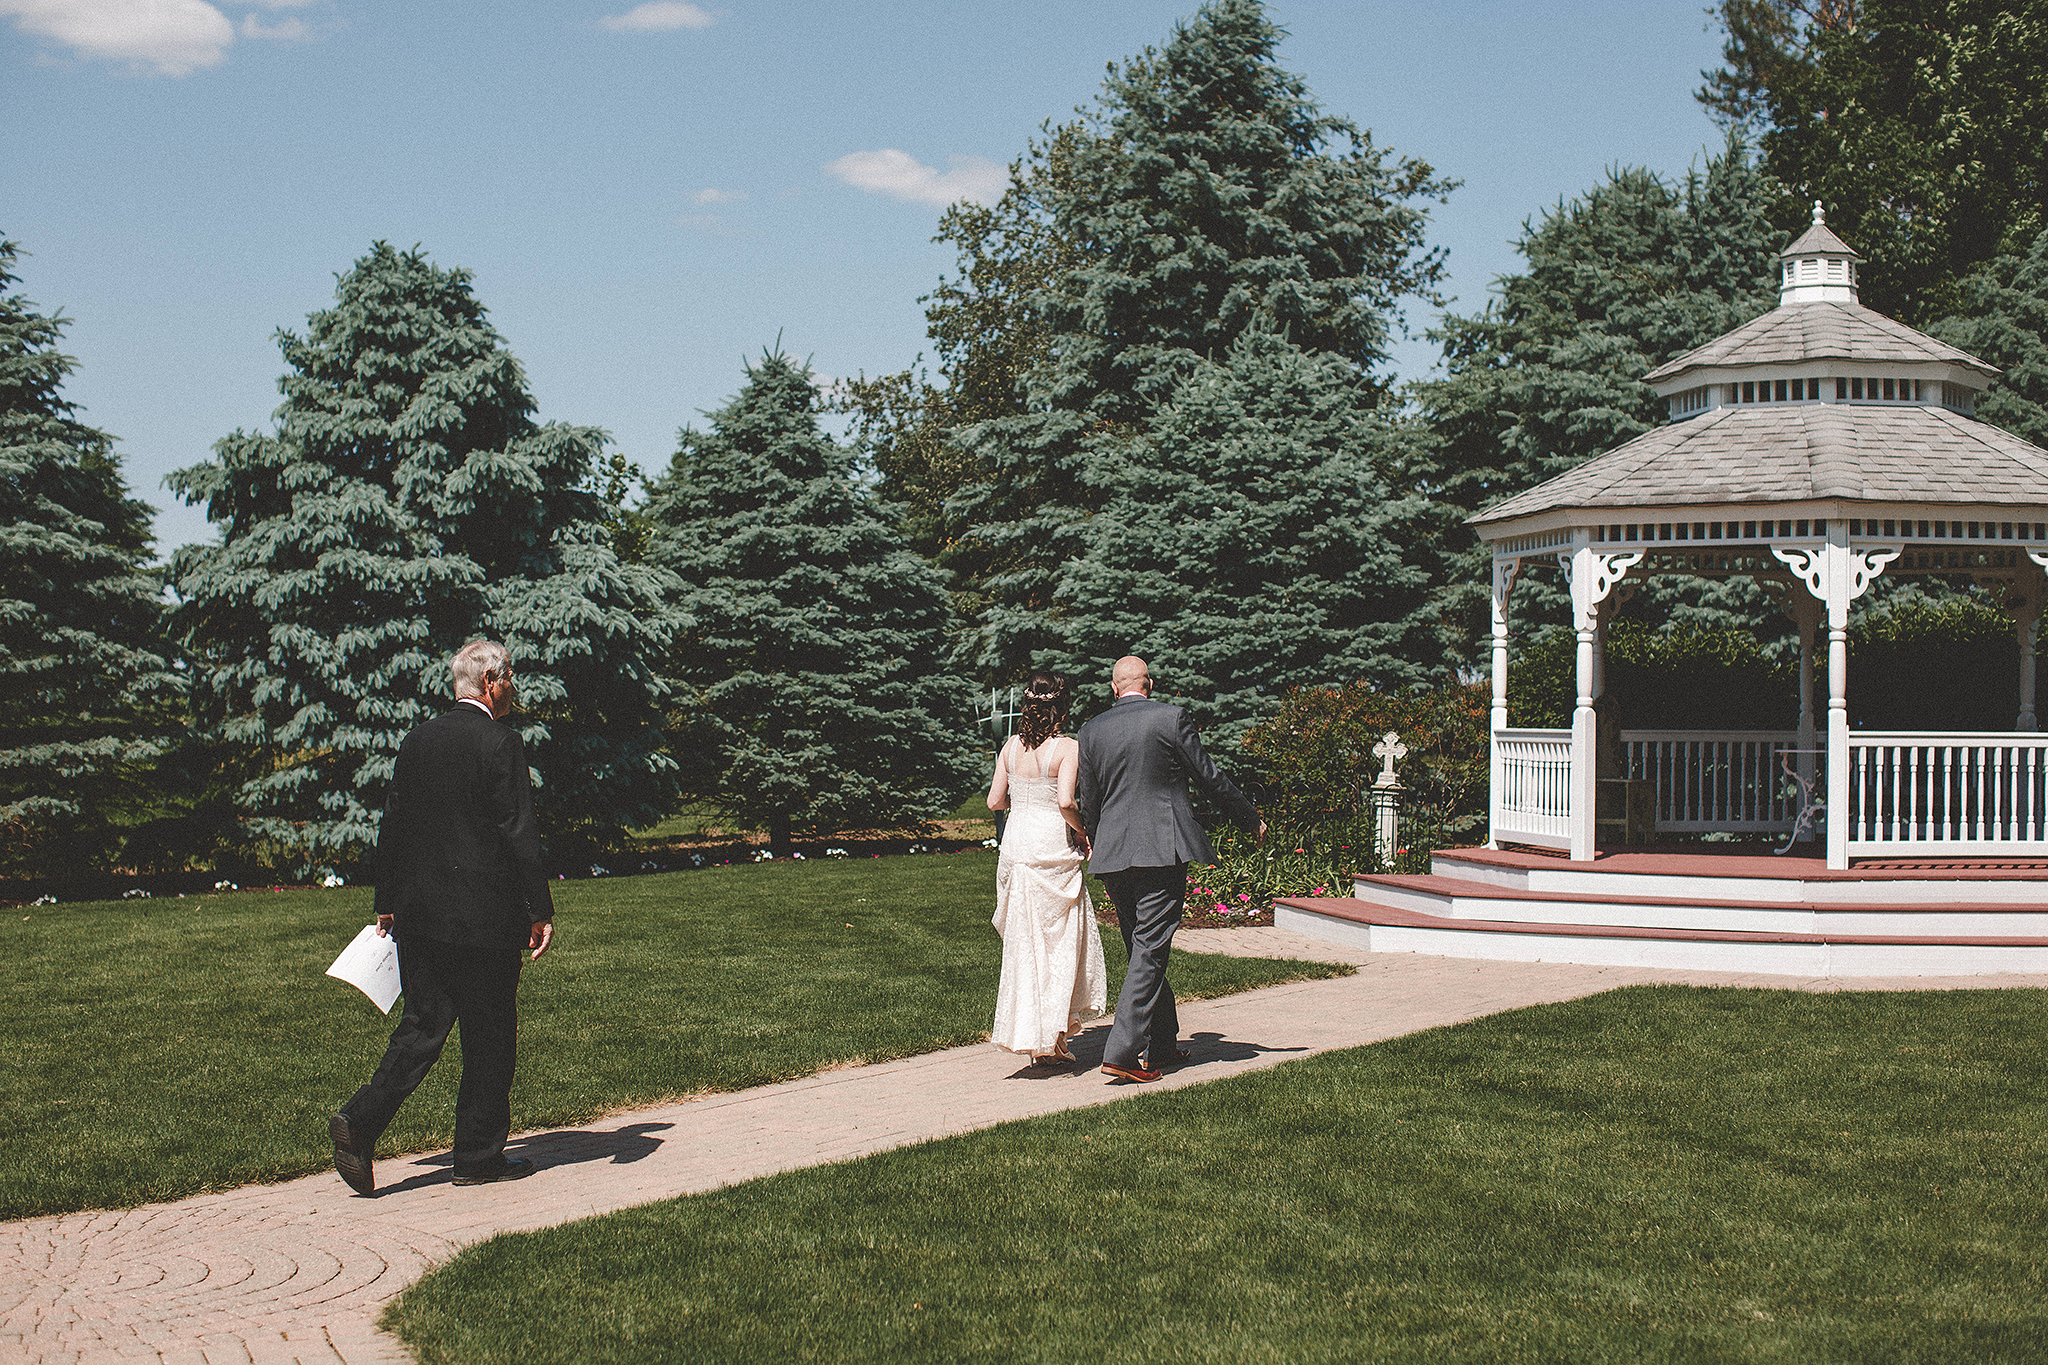 Outdoor elopement photos at Chapel in the Pines | Sycamore IL Wedding Photographer | Chrissy Deming Photography